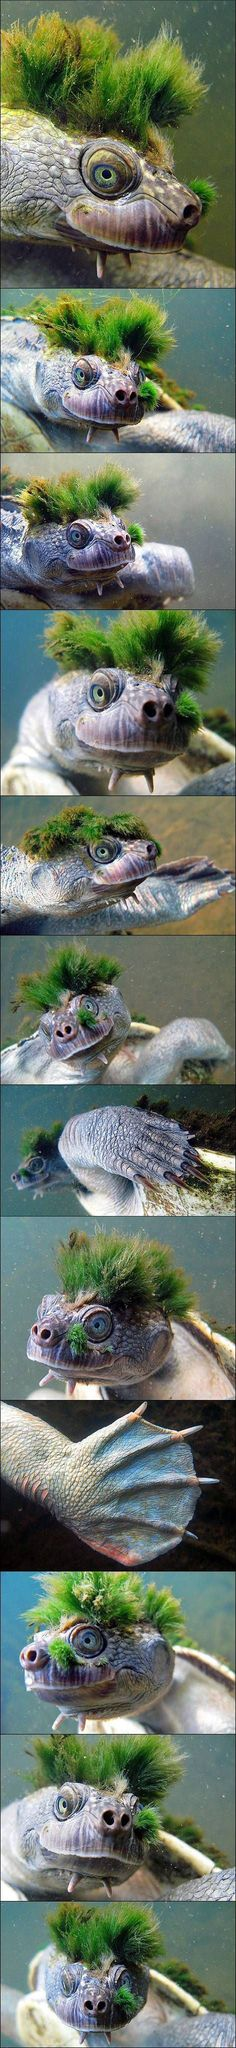 The Mary River turtle, Elusor macrurus, is an endangered short-necked turtle that inhabits the Mary River in south-east Queensland, Australia.  This Mary River turtle has algae growing on its head, but it doesn't seem to mind. In fact, the algae might be beneficial and provide some form of camouflage to avoid predators.